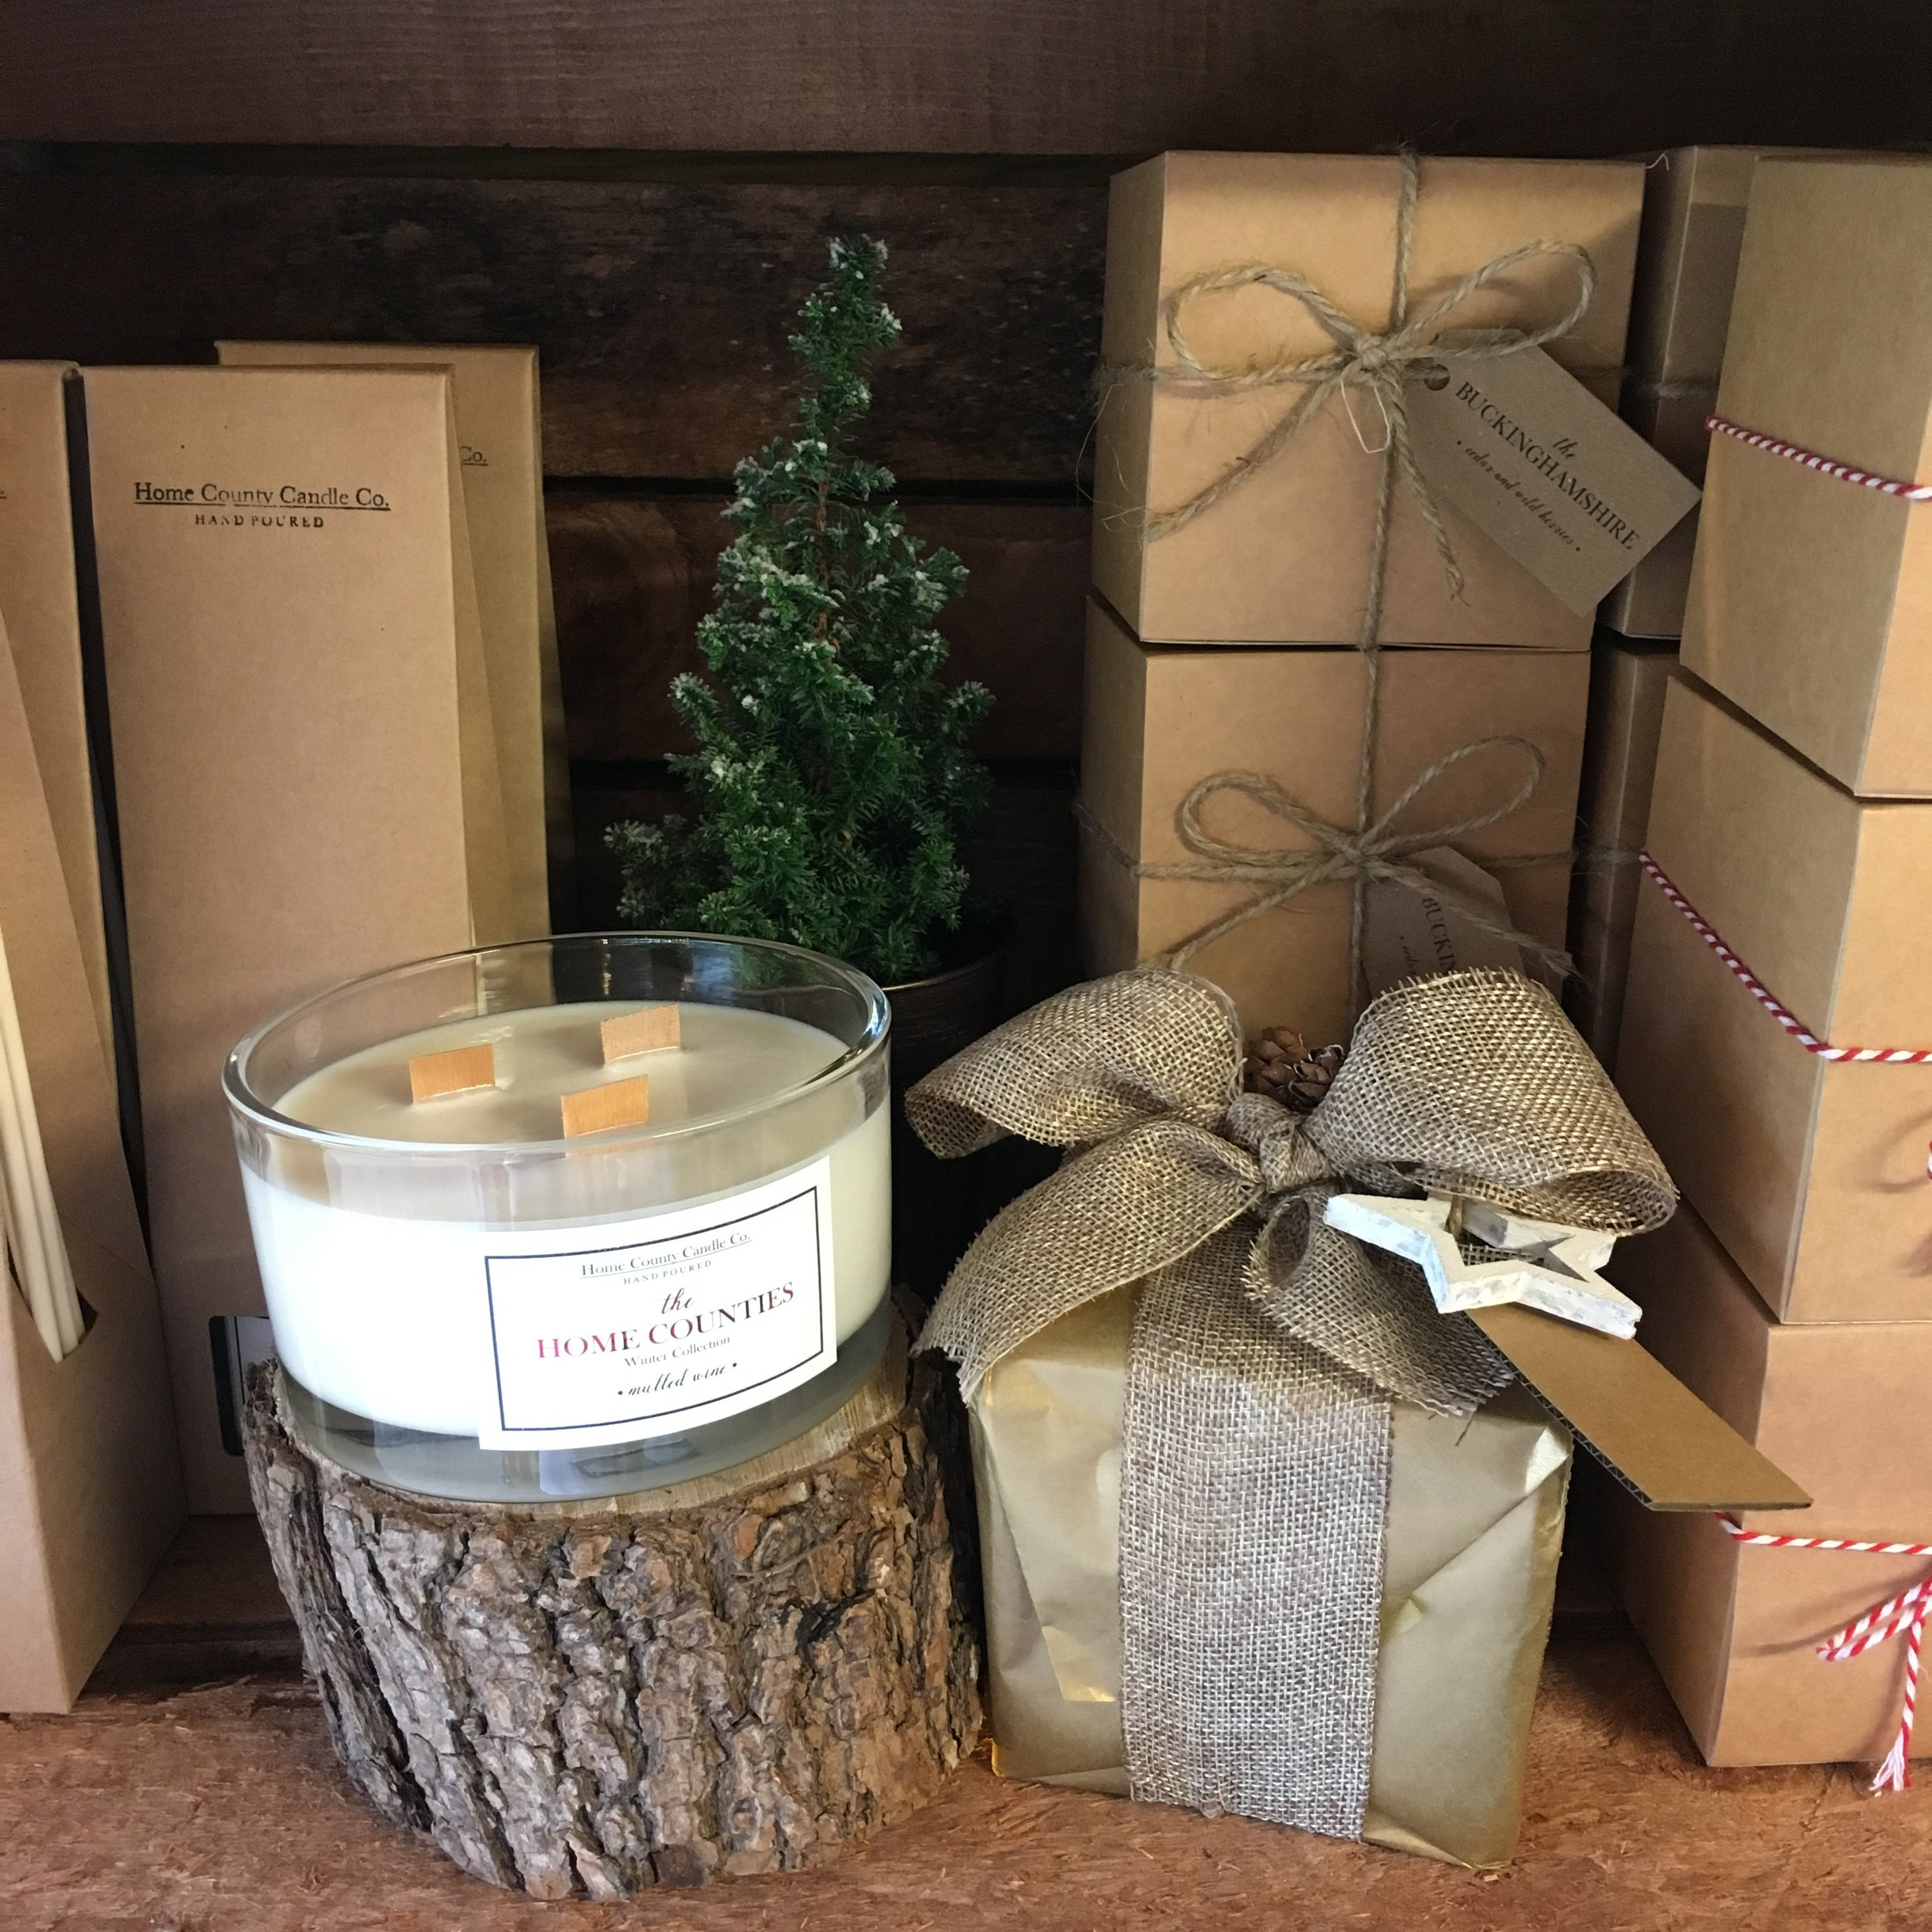 "Why candles make the perfect gift - Now of course we think scented candles make the perfect Christmas gift, but don't just take our word for it - here are 3 reasons candles are the ultimate stocking filler:1. ""There are few things more widely well-received than a chic, well-crafted candle."" Forbes. Therefore, no matter who it is you're buying for, you can guarantee the recipient will appreciate your thoughtful gift.2. They add a personal touch. Scents have an extraordinary way of transporting people back to times and places, and evoking the most powerful of memories. Therefore, to be able to give somebody a gift which not only smells and looks great, but also has the power to remind them of home, is in itself a triumph.3. They can be enjoyed for weeks and months to come. Even when Christmas has become a distant memory and all the turkey and Toblerone has been demolished, with a burn time of 45-50 hours your Home County Candle will still be burning away, filling your recipient's home with joy."